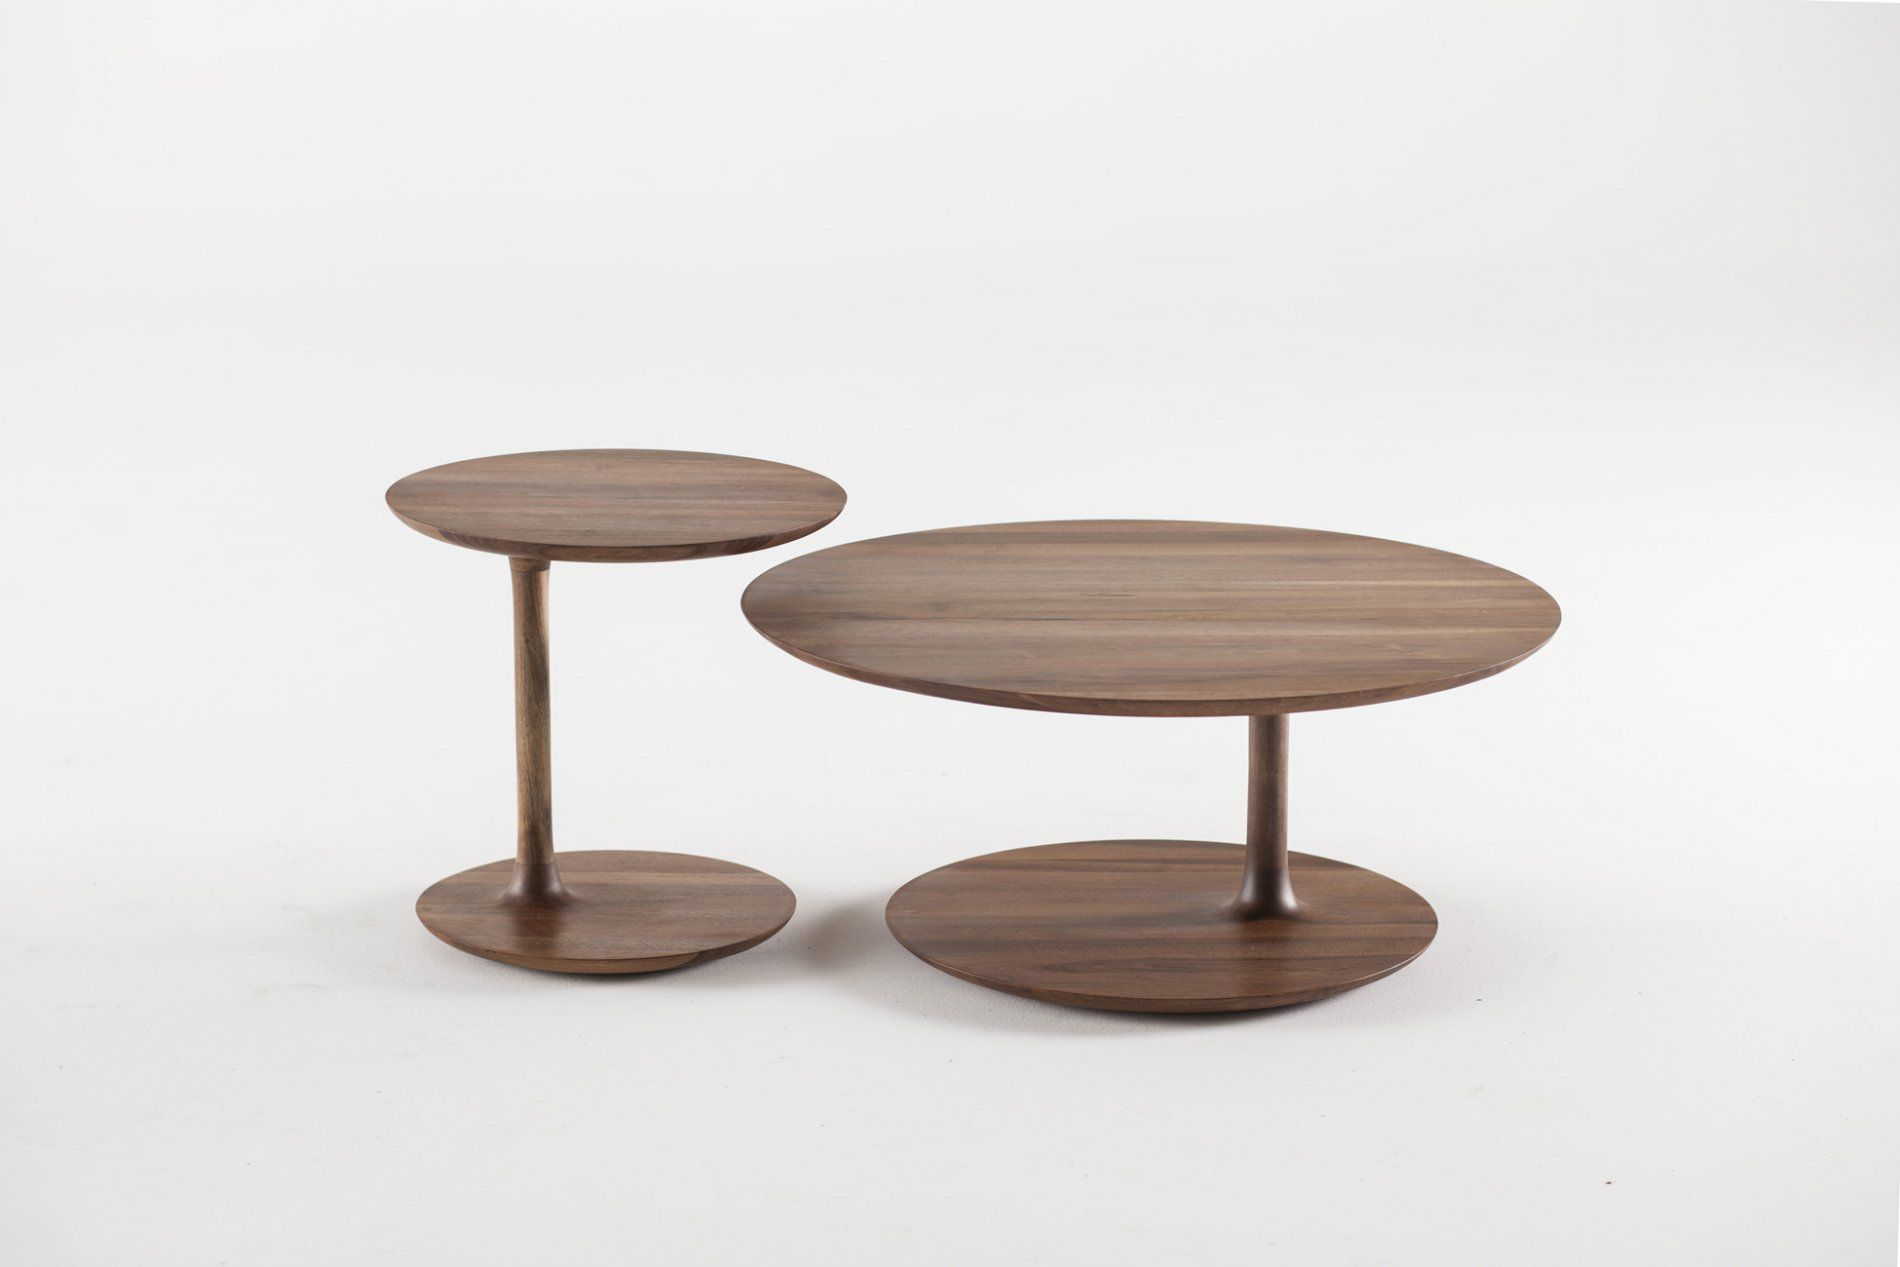 Products Round Wooden Coffee Table Wooden Coffee Table Designs Round Coffee Table Modern [ 1267 x 1900 Pixel ]